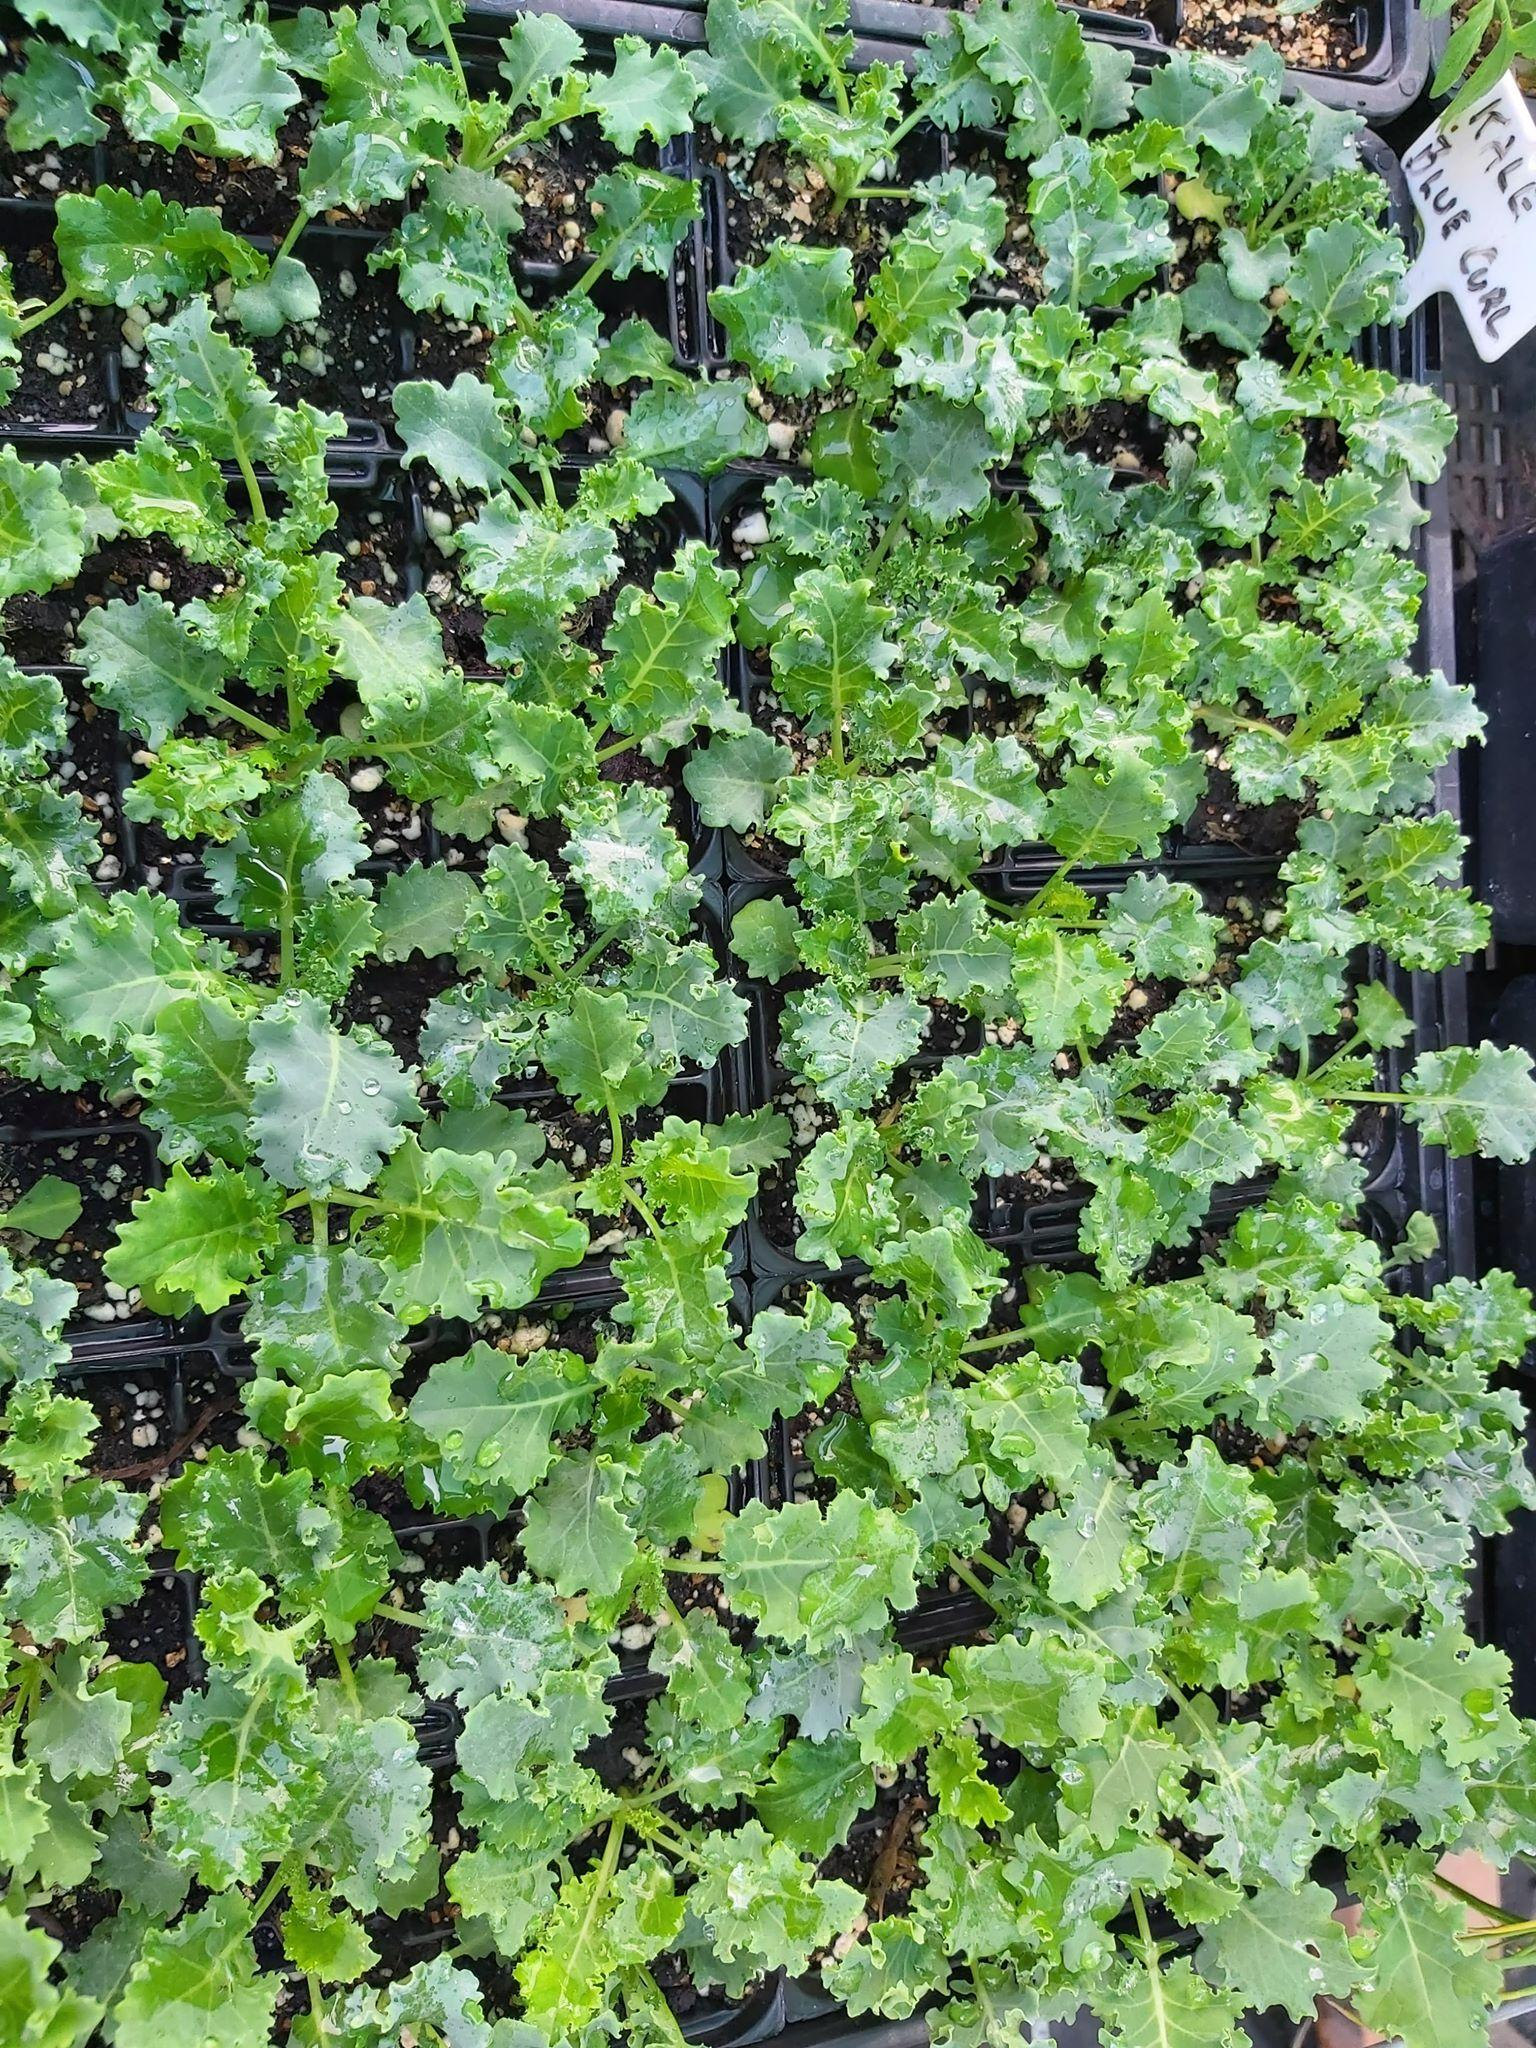 Seedlings: Kale varieties